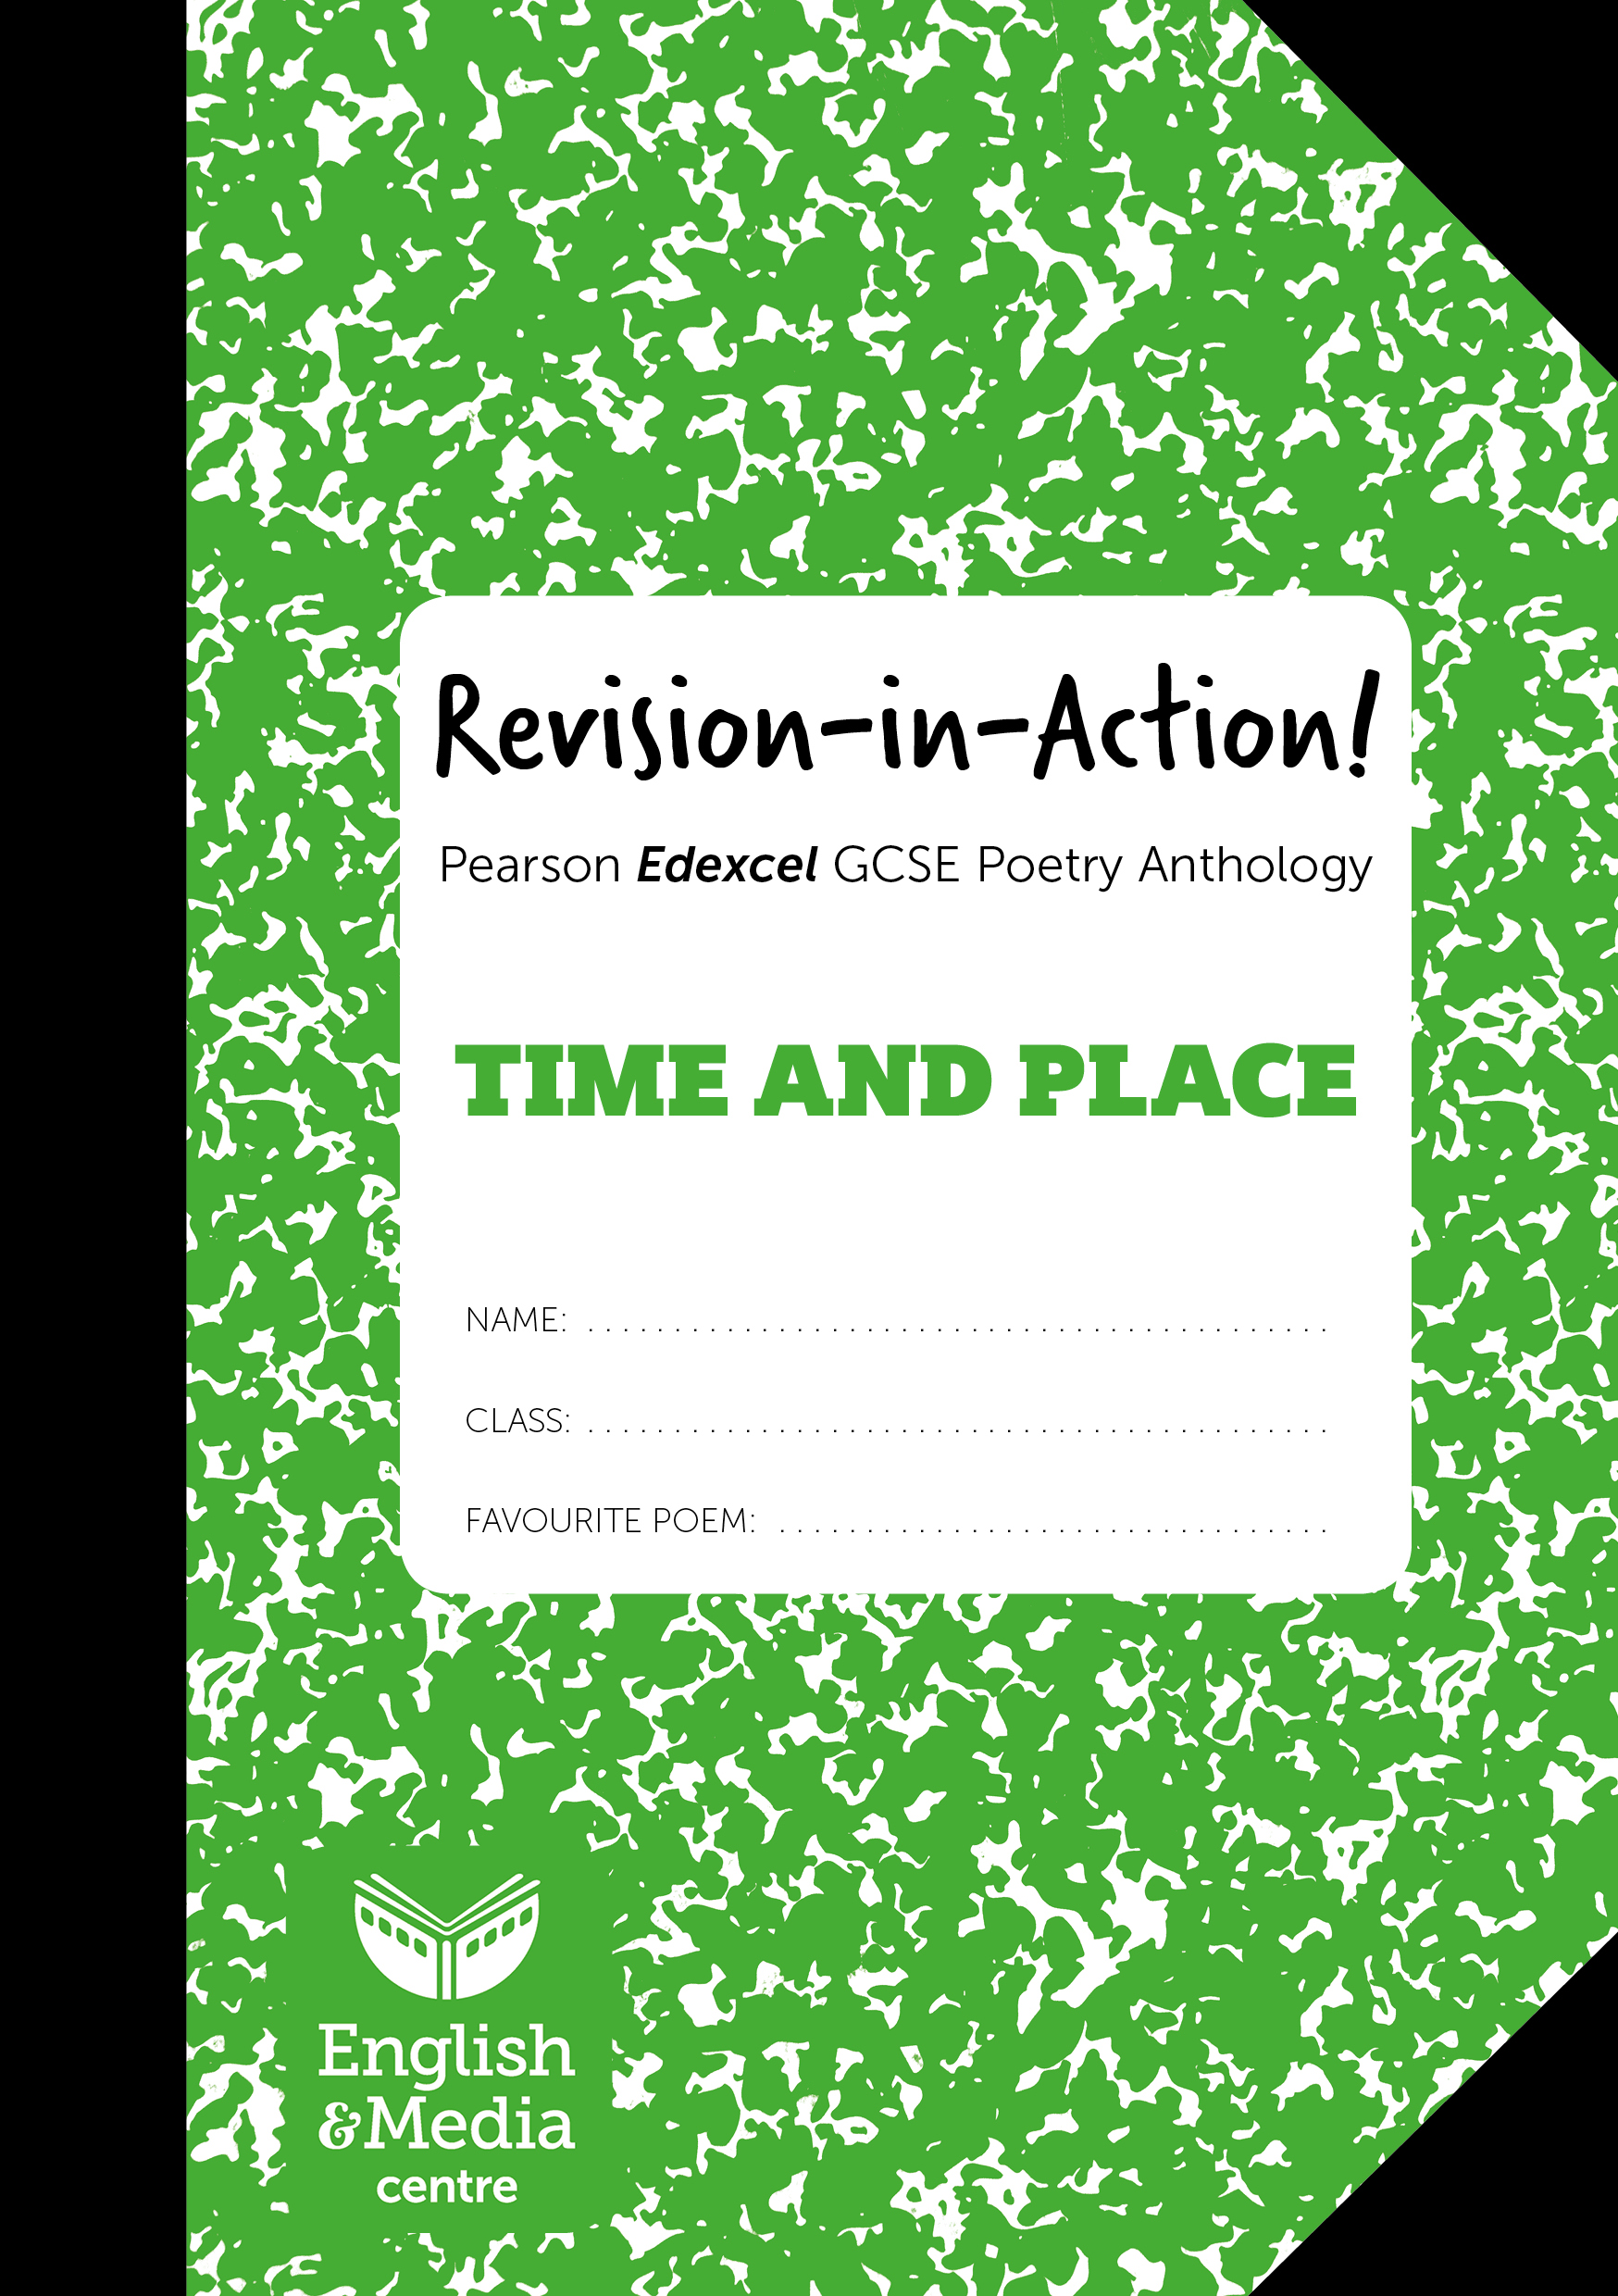 Cover image for Revision-in-Action – Edexcel Time and Place (6+ sets of 10 workbooks = £1 per copy)